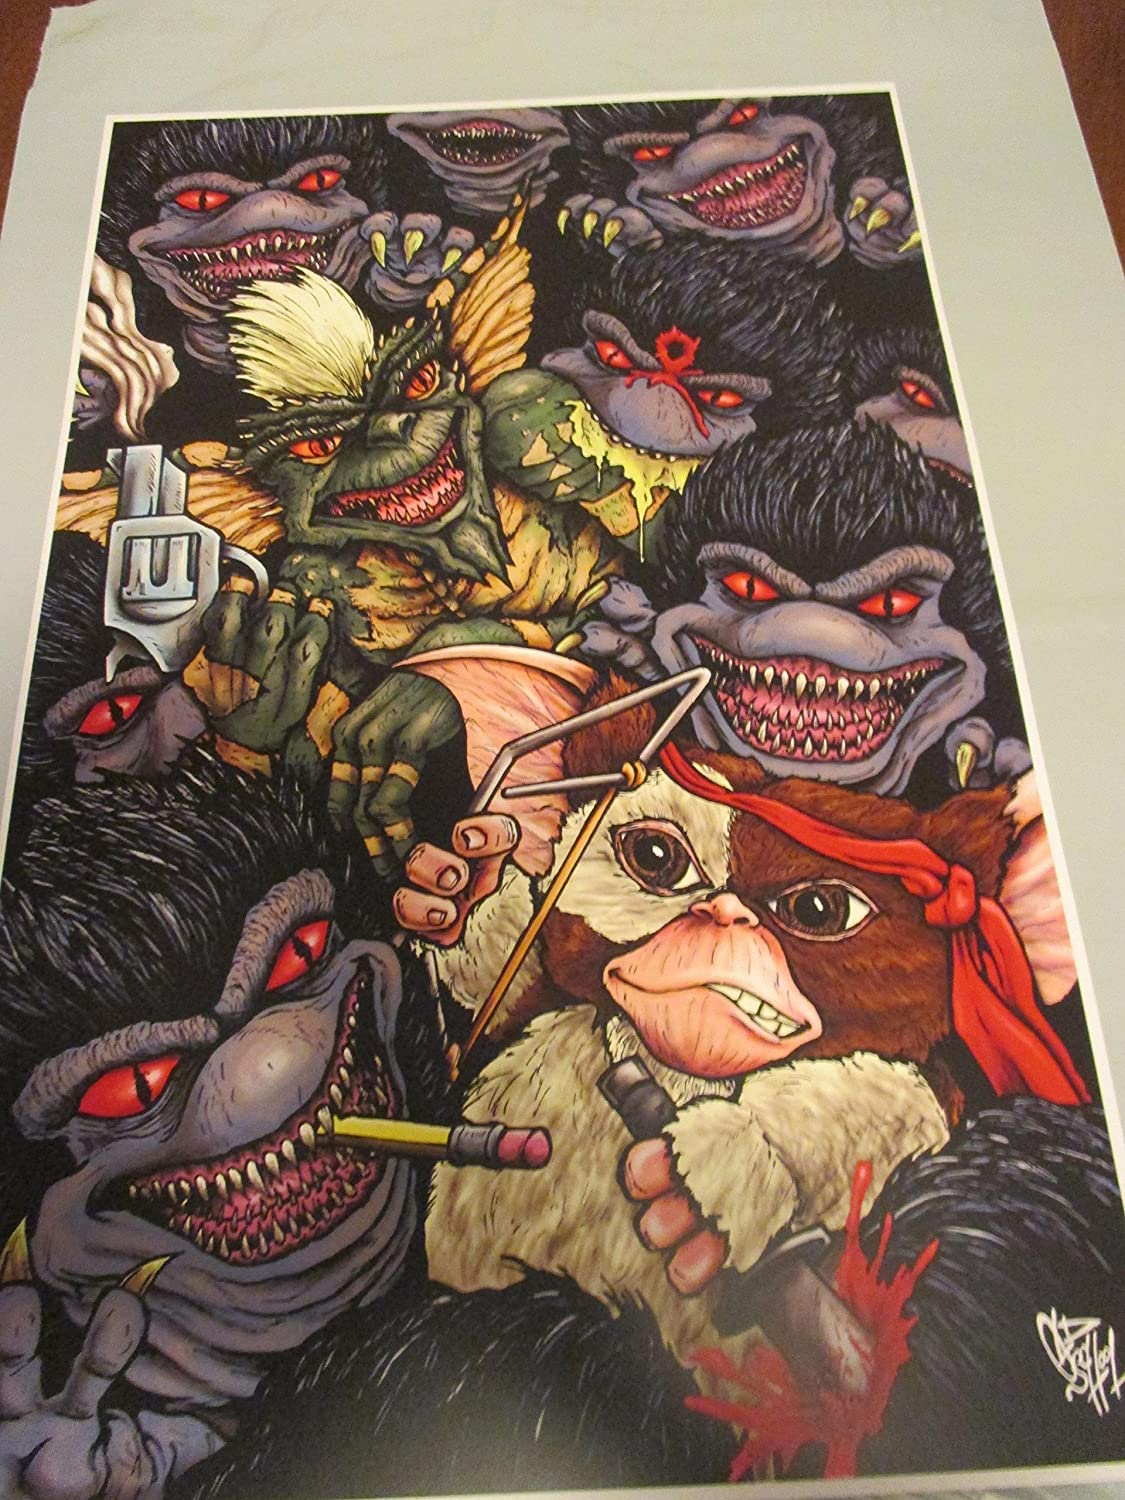 GREMLINS VS CRITTERS FULL COLOR !!PRINT 11' By 17' 'THE ART OF OLD SCHOOL 'approved Dealer limited edition GREMLINS VS CRITTERS FULL COLOR !!PRINT 11 By 17 ' THE ART OF OLD SCHOOL ' approved Dealer limited edition